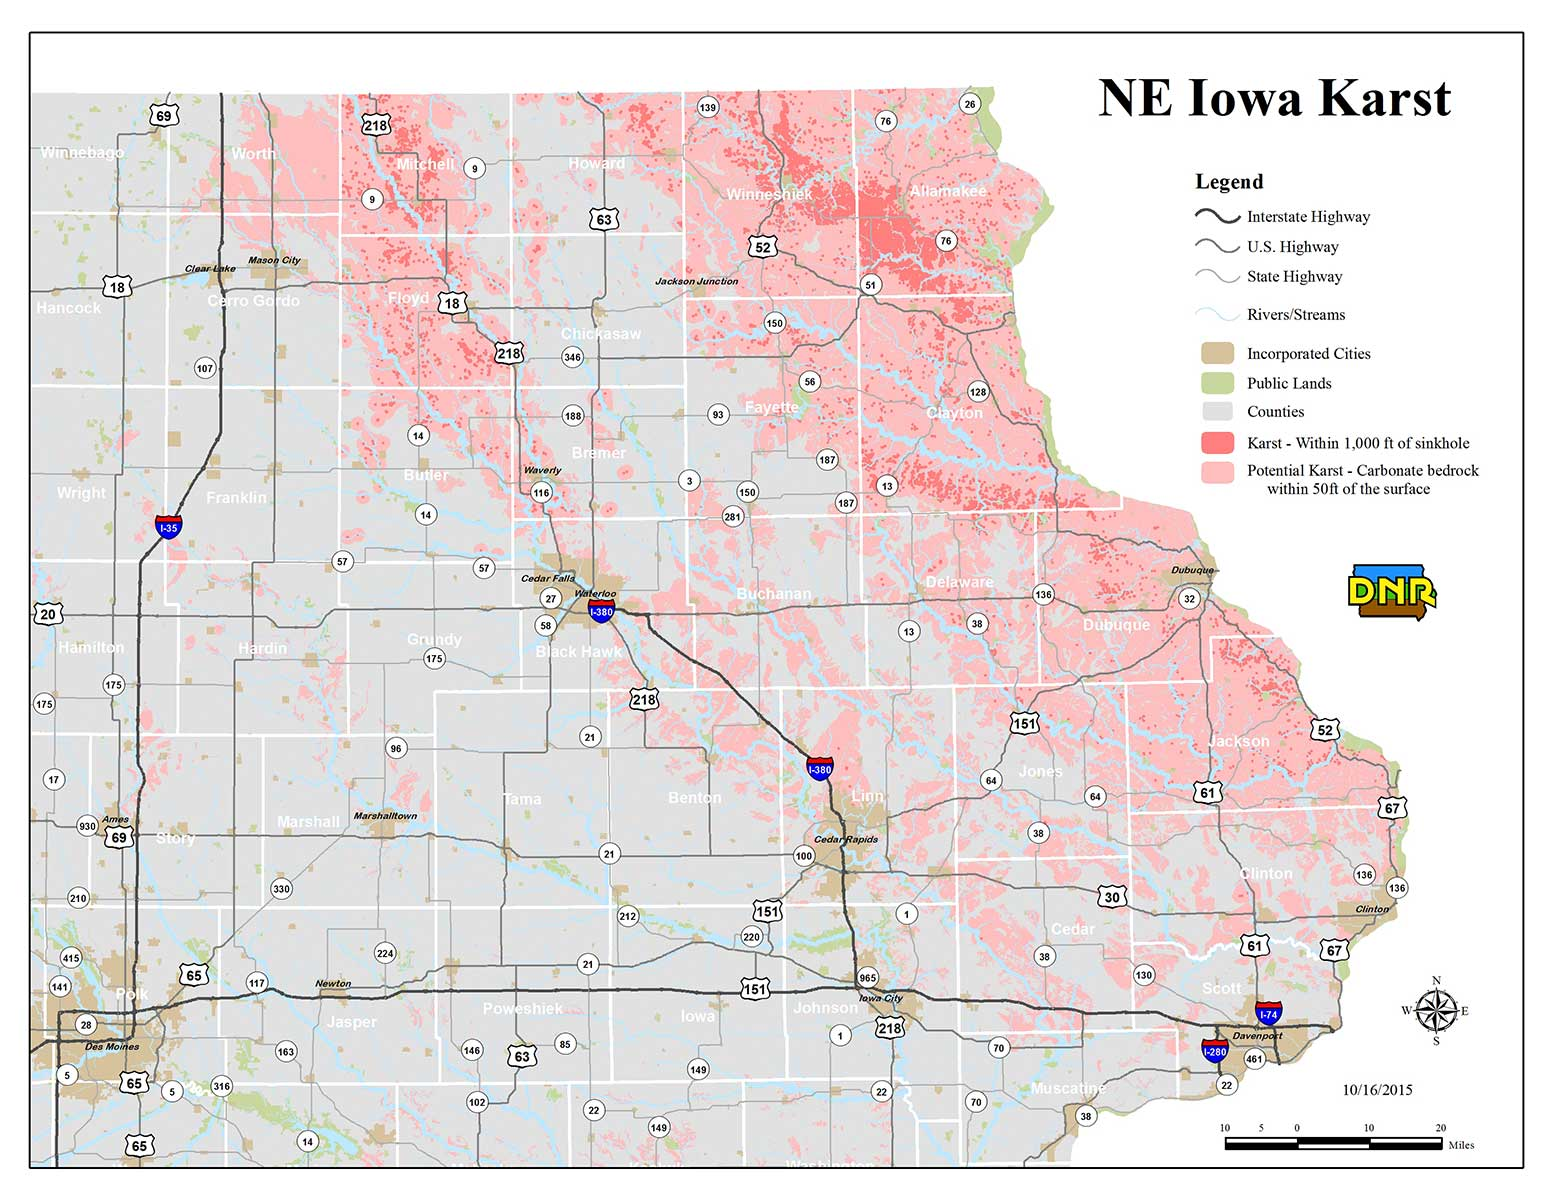 NE Iowa Karst Map